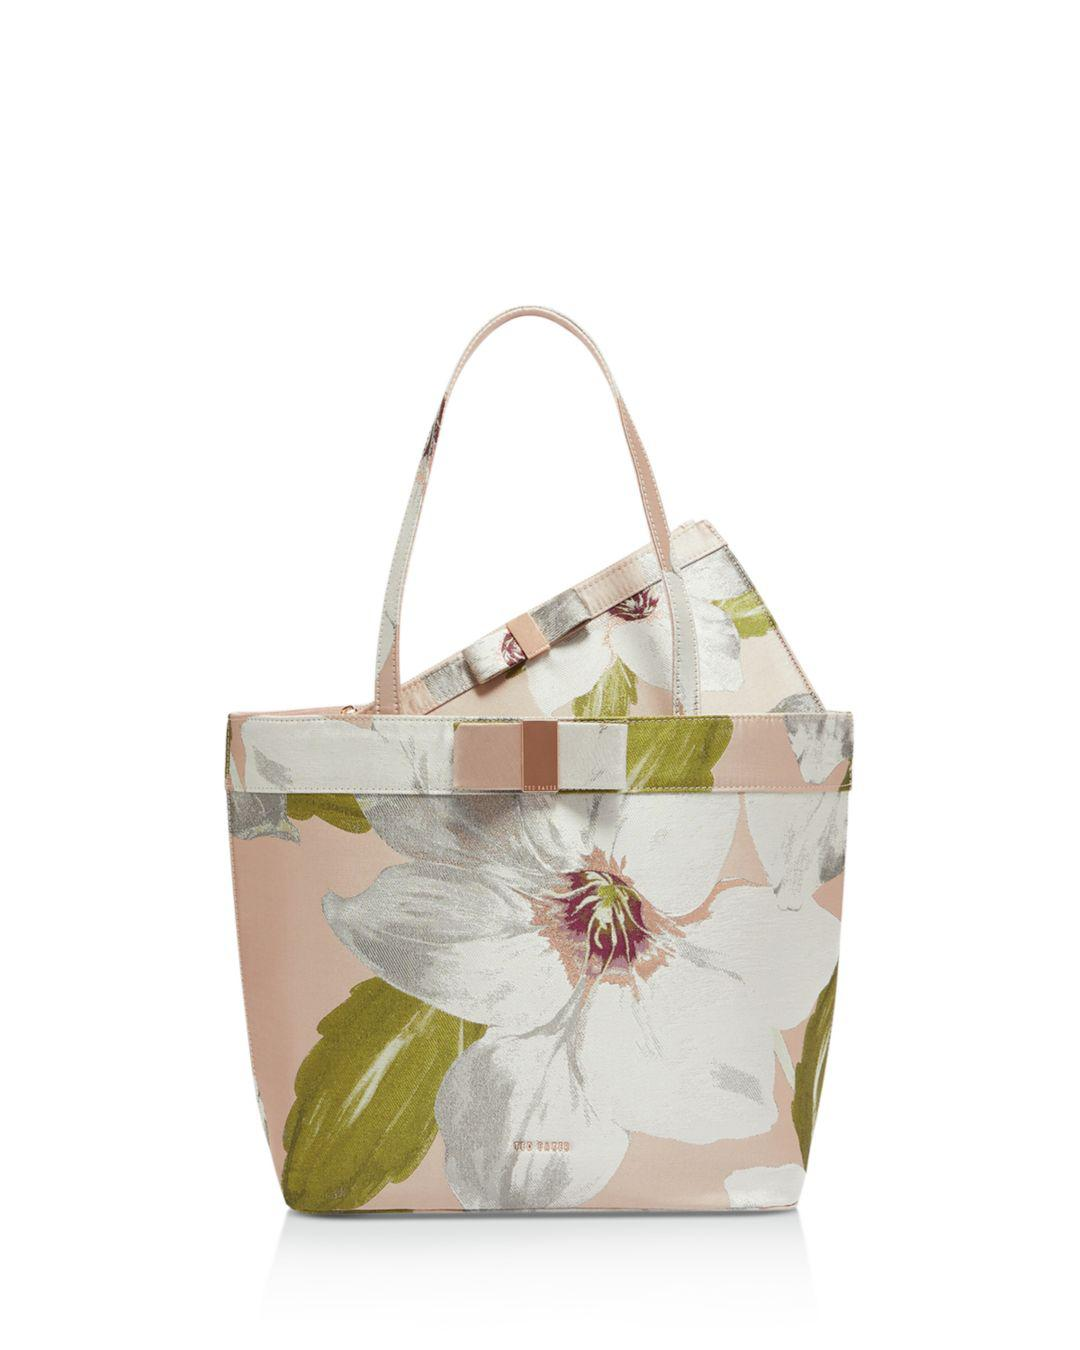 c892e6426a62 Lyst - Ted Baker Cherrey Chatsworth Satin Shopper Tote